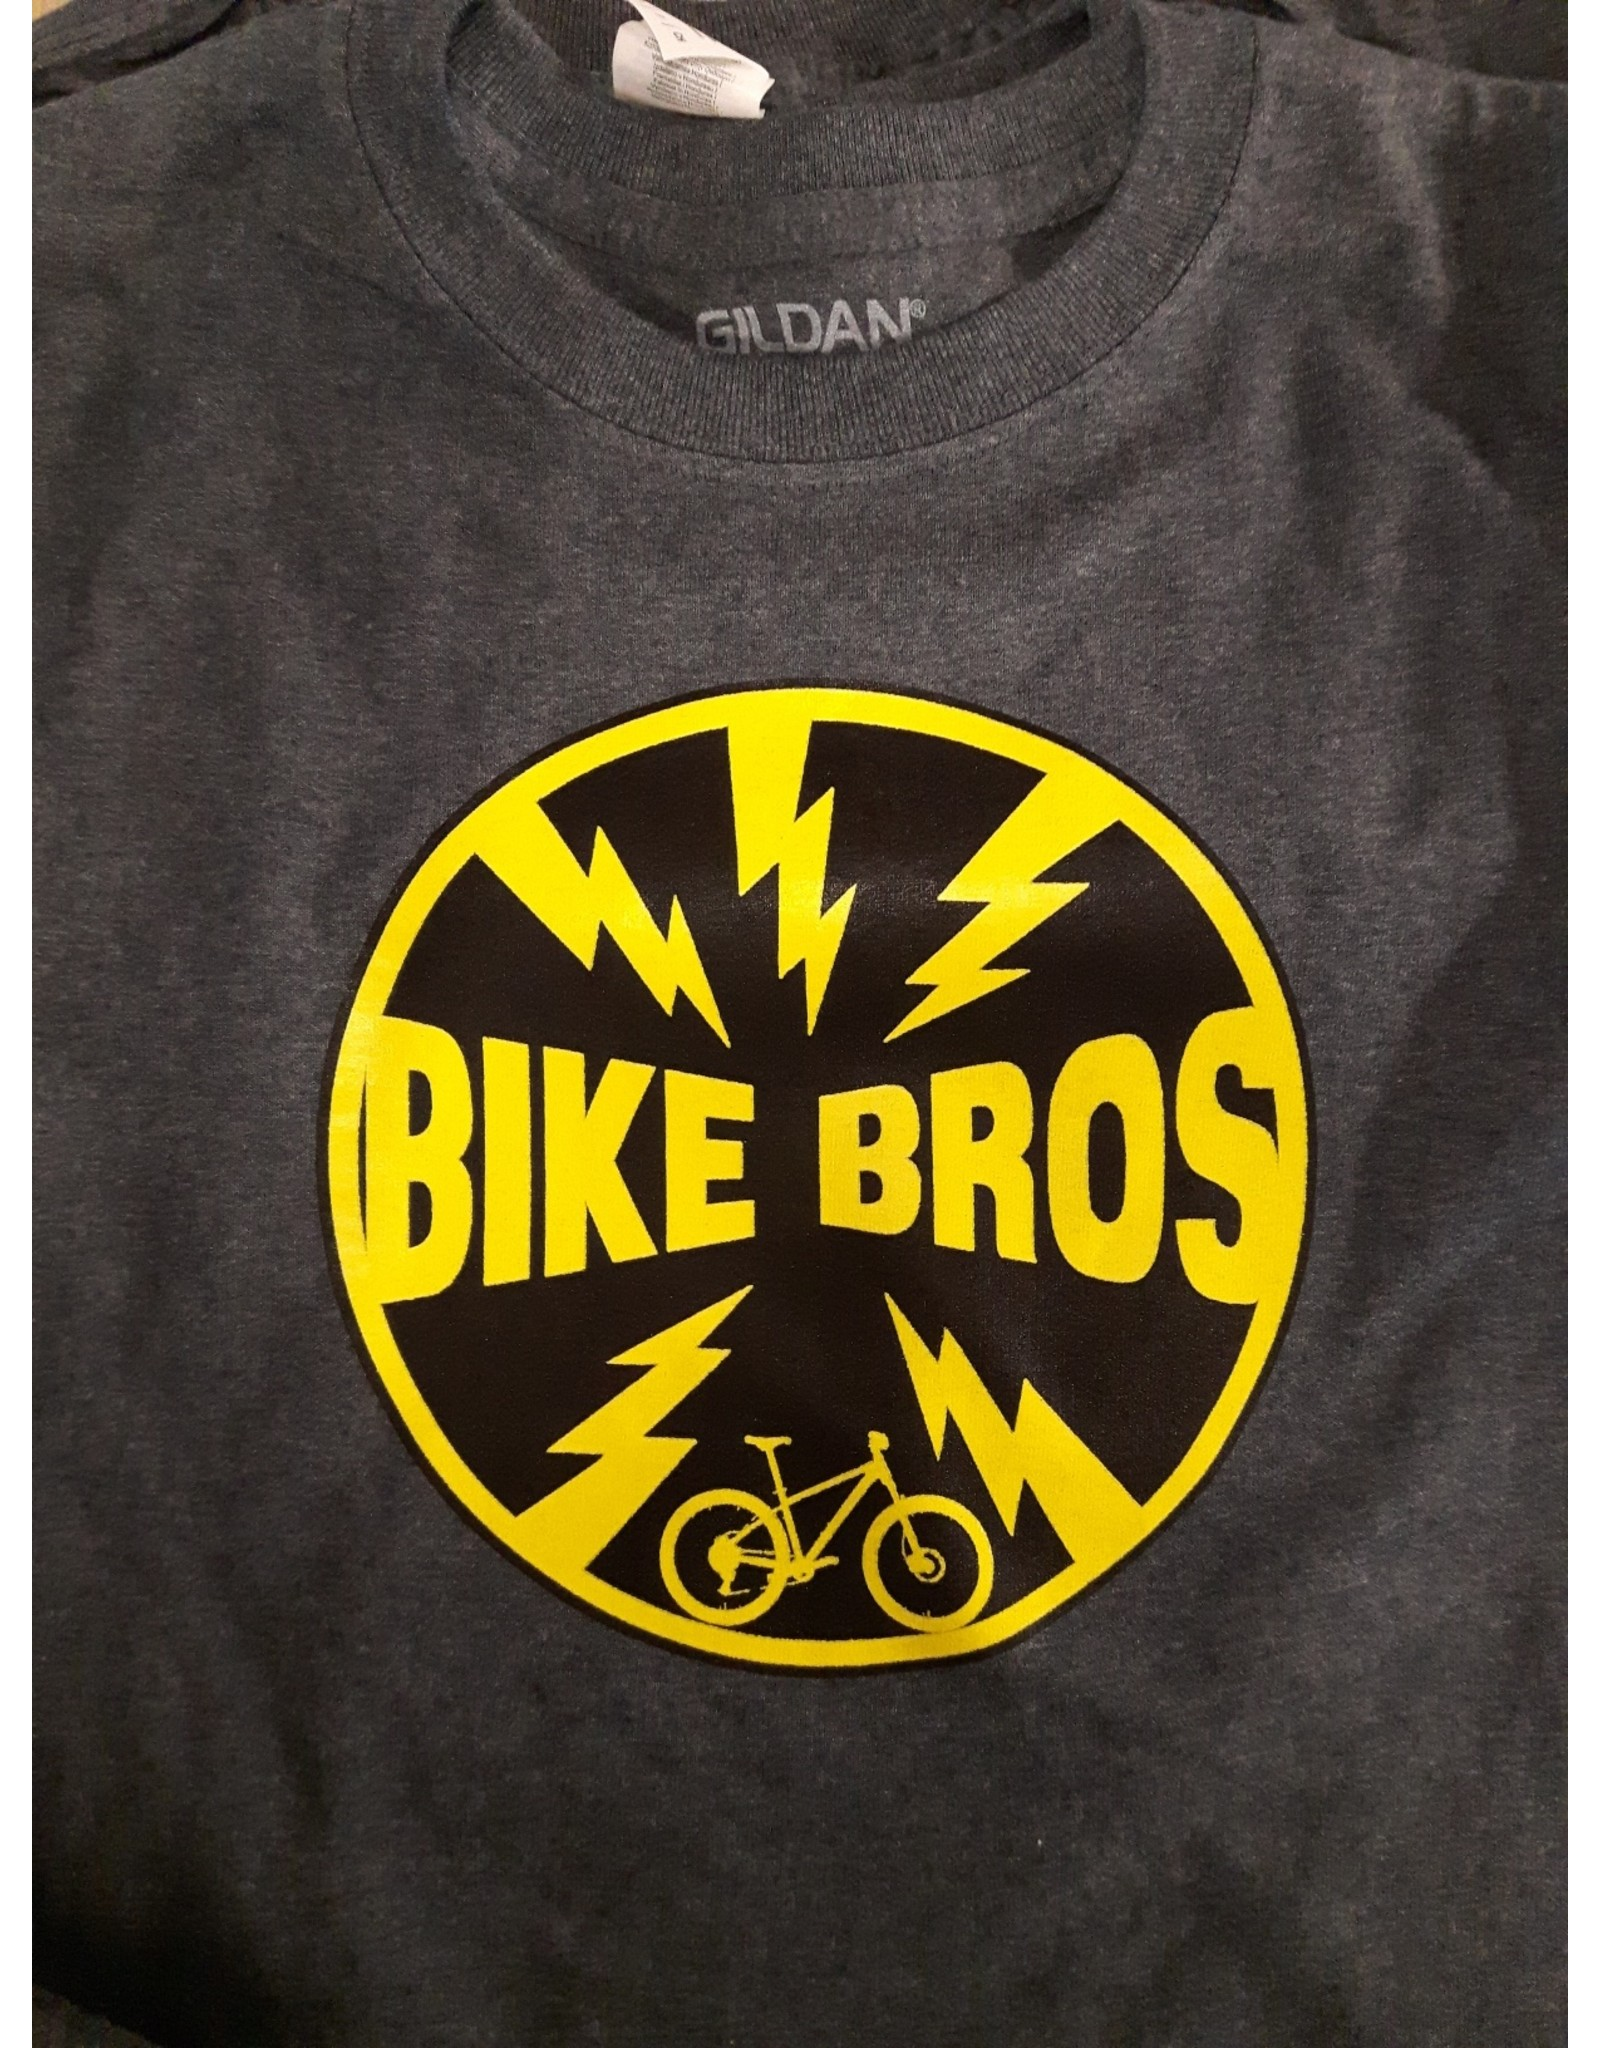 Bike Bros. Bike Bros Bolt T-shirt